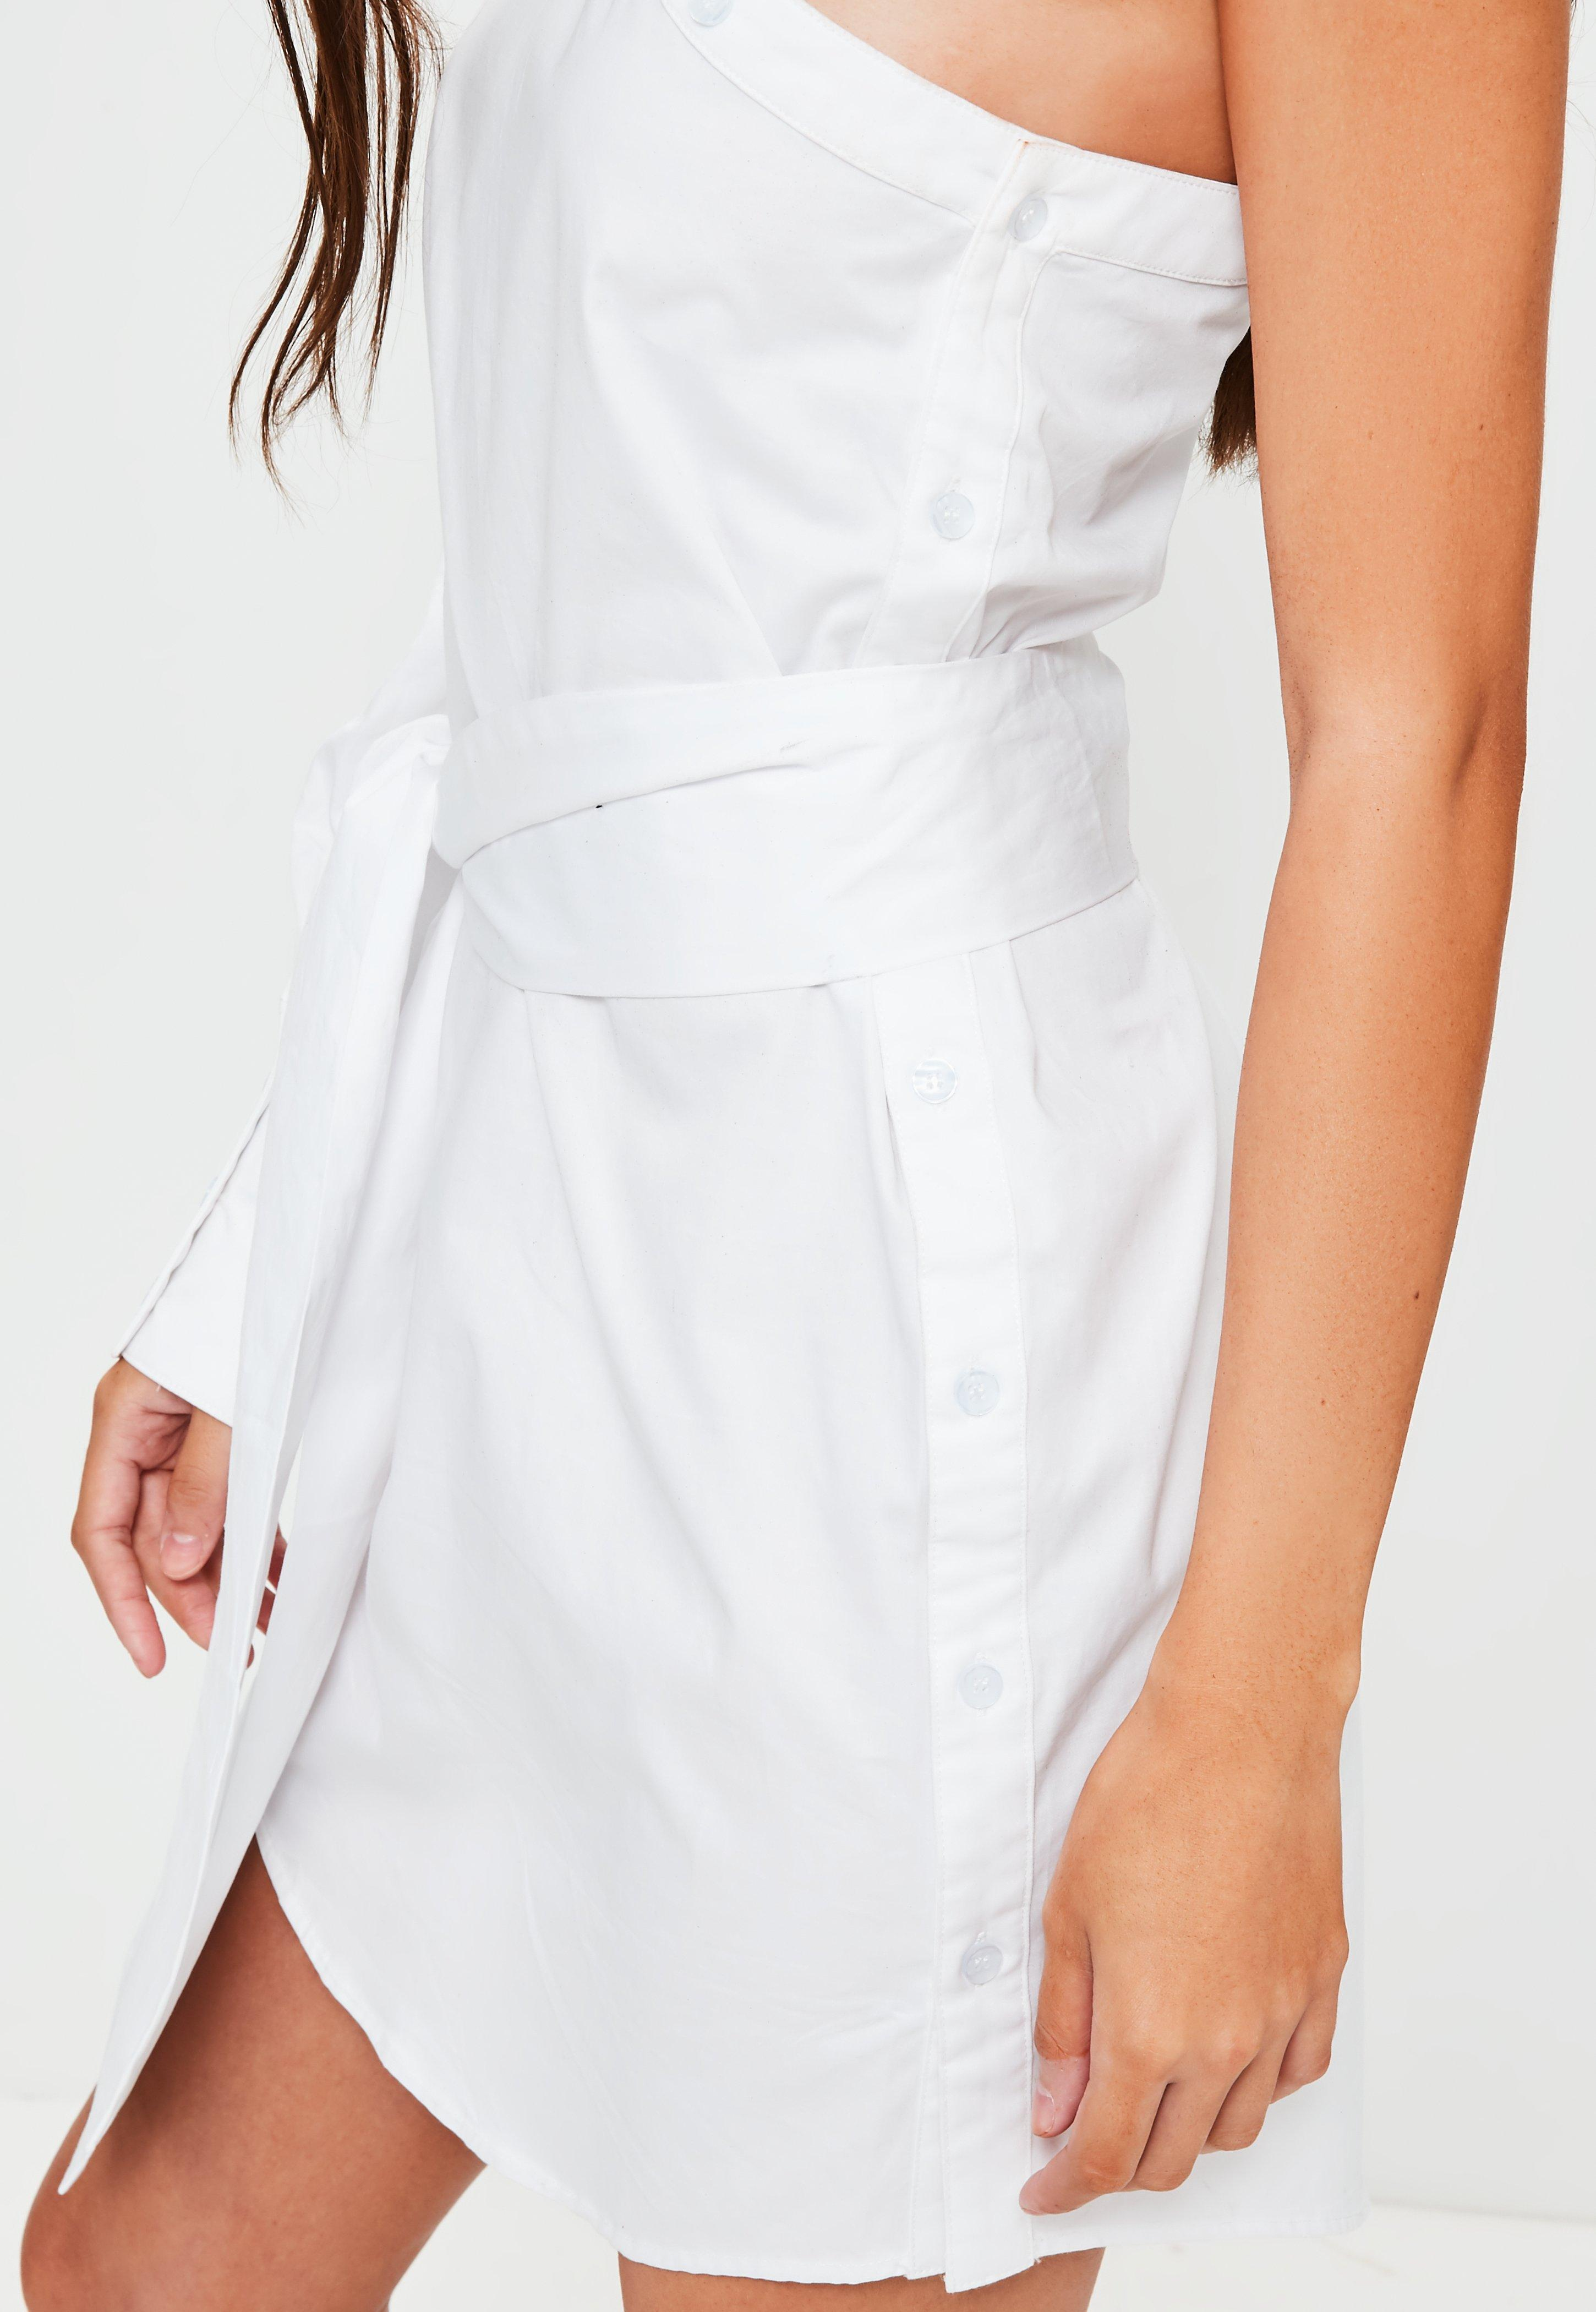 b8e22f6d413926 Lyst - Missguided White One Shoulder Unbutton Shirt Dress in White